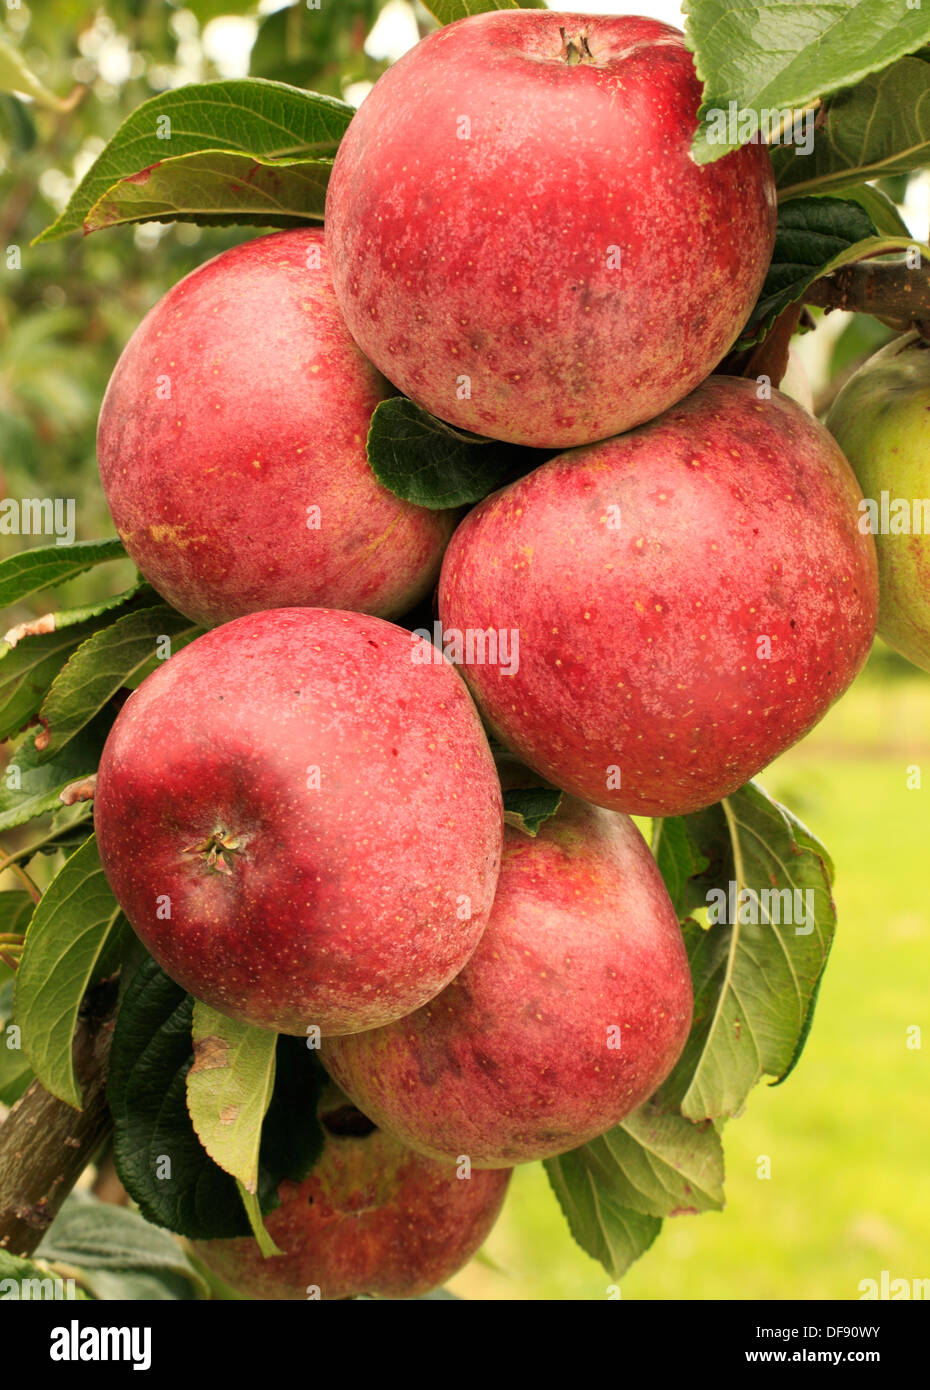 Apple, Rivers St. Martins, variety growing on tree, fruit red apples England UK - Stock Image